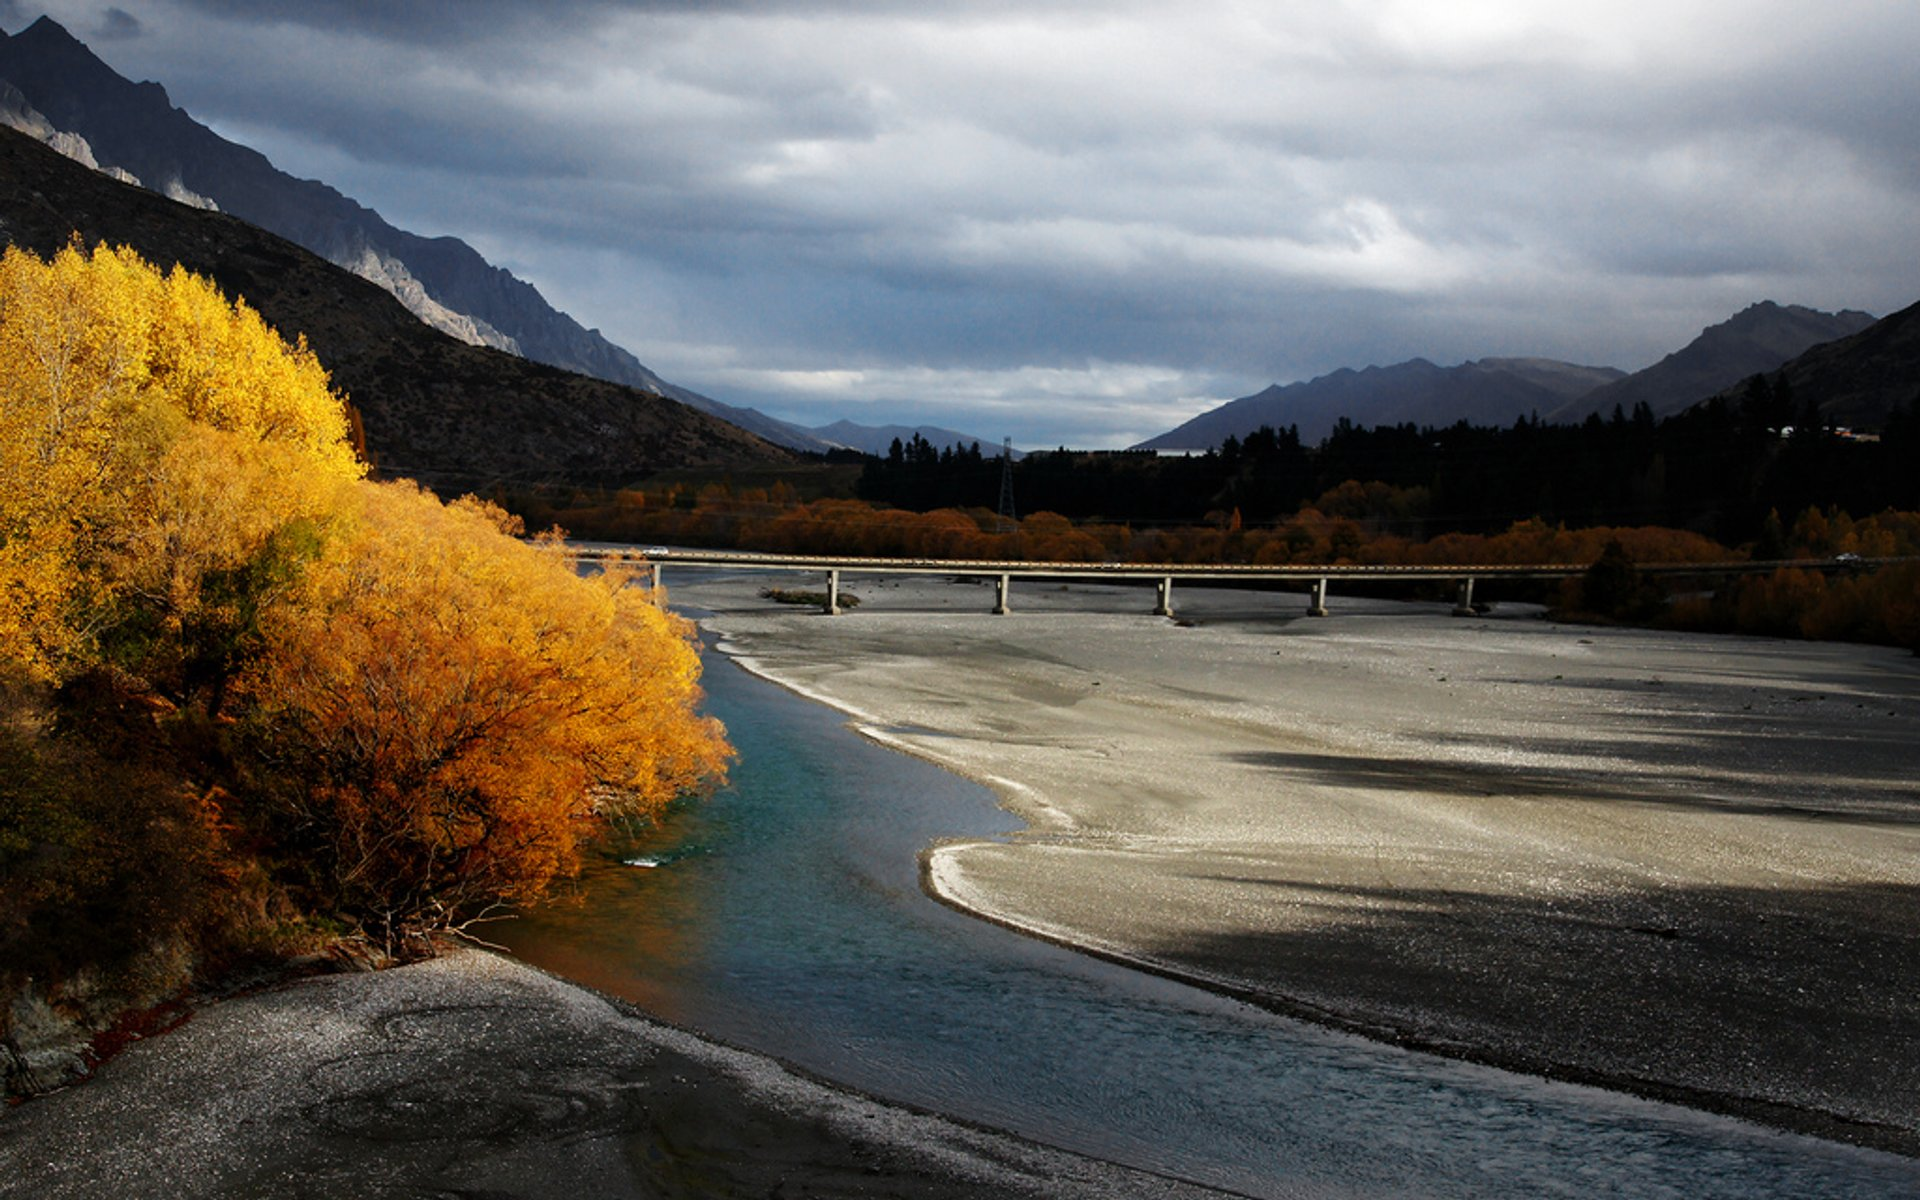 Autumn in New Zealand - Best Season 2019